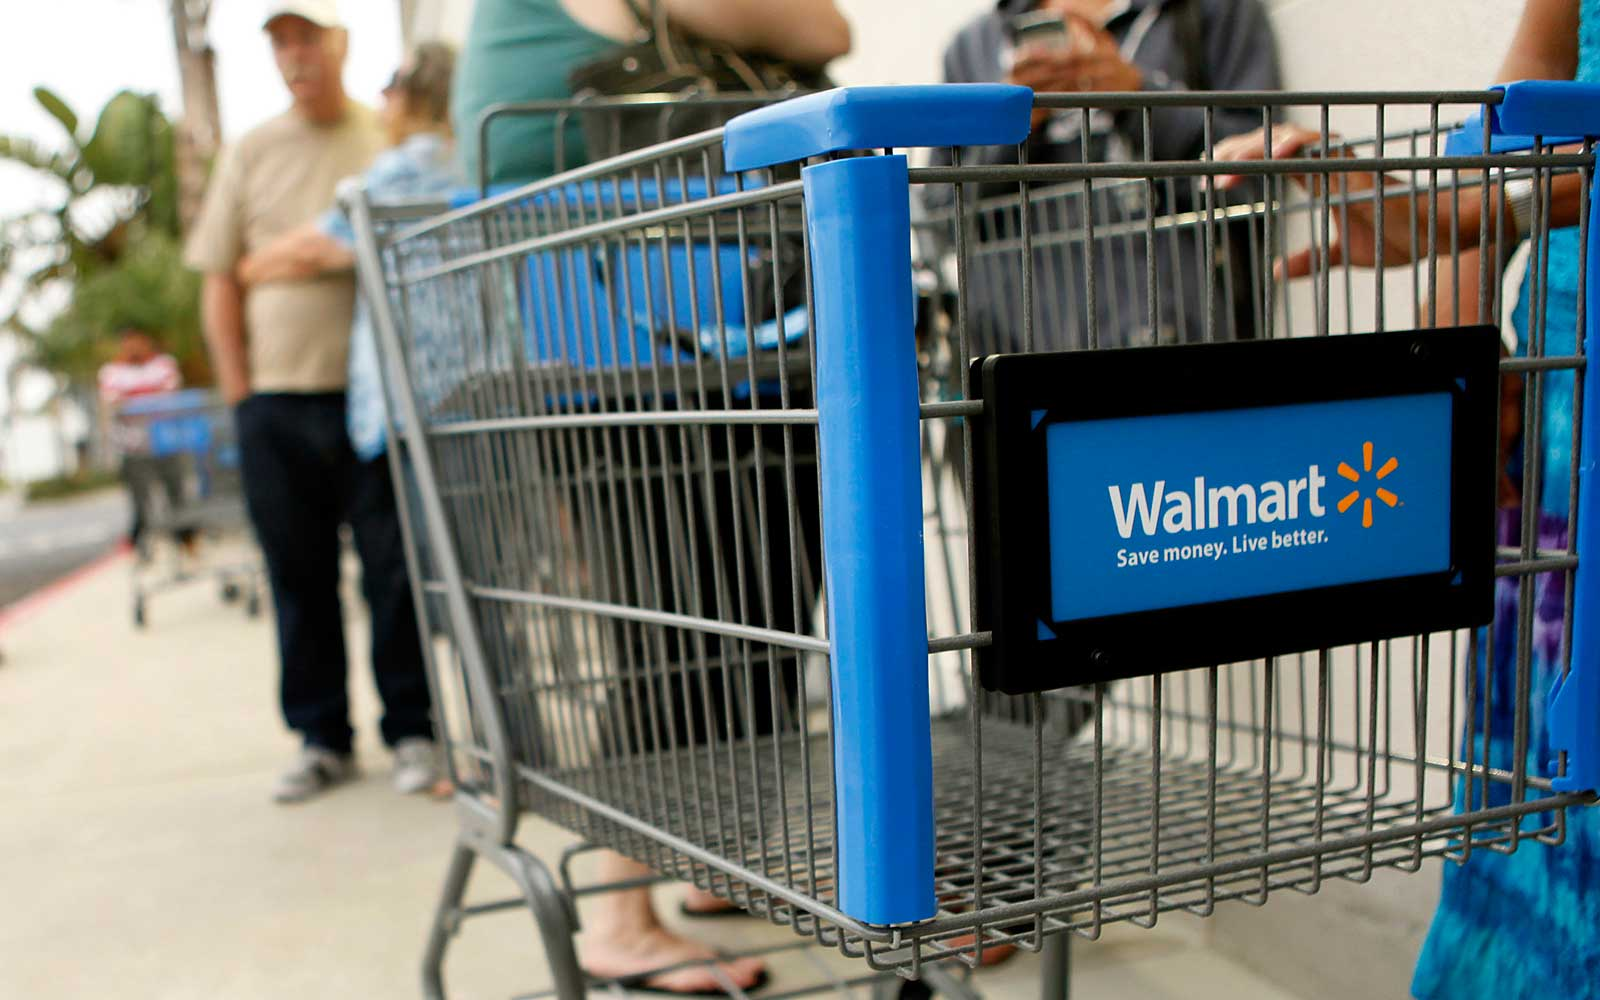 Walmart Is Launching a Personal Shopper Service That Won't Just Deliver Walmart Items (Video)